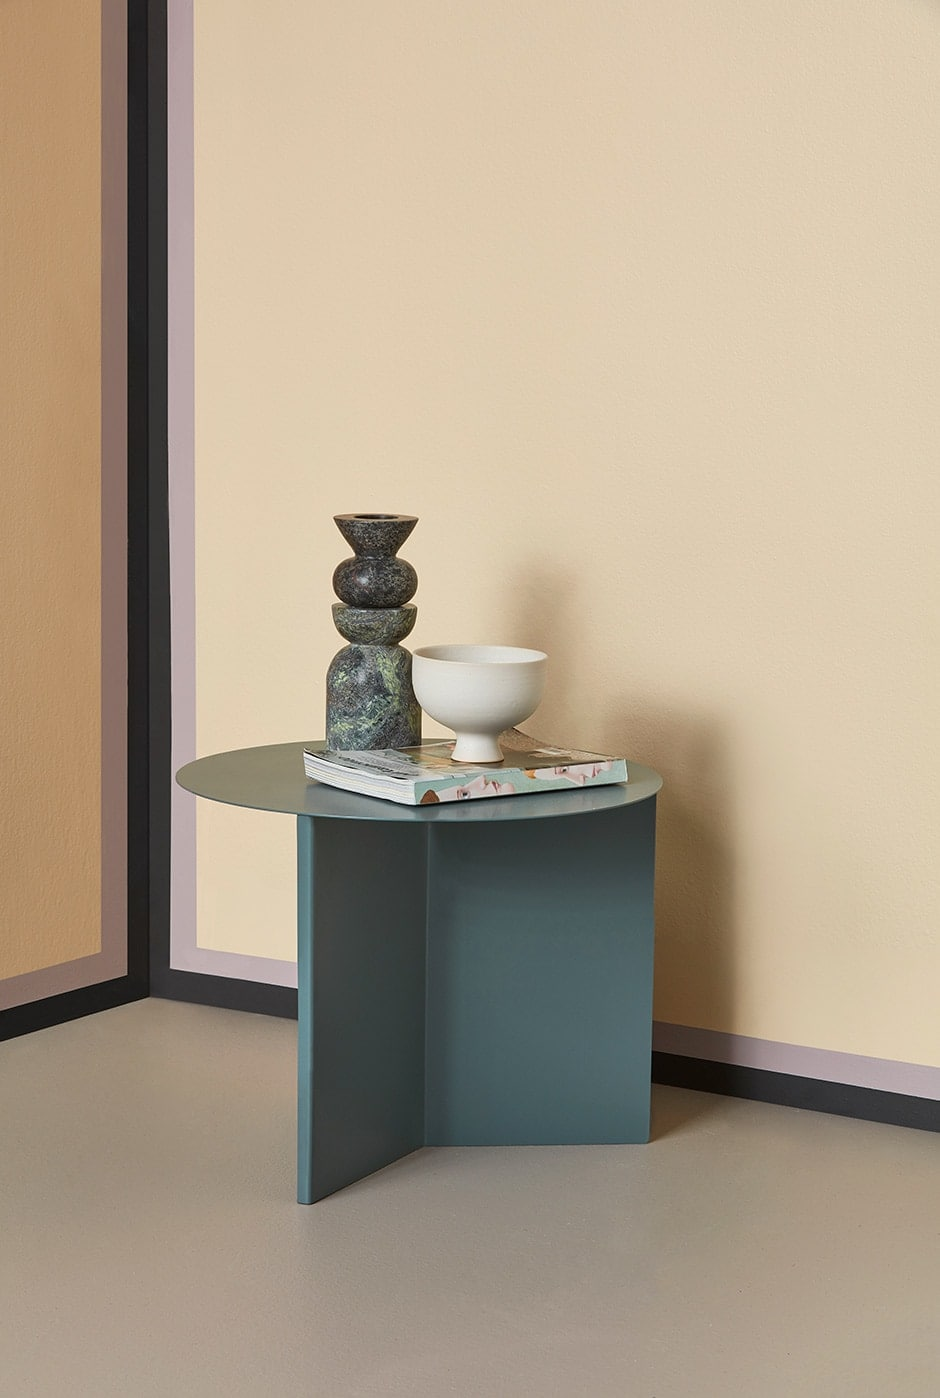 Use paint to give a room a colourful edge